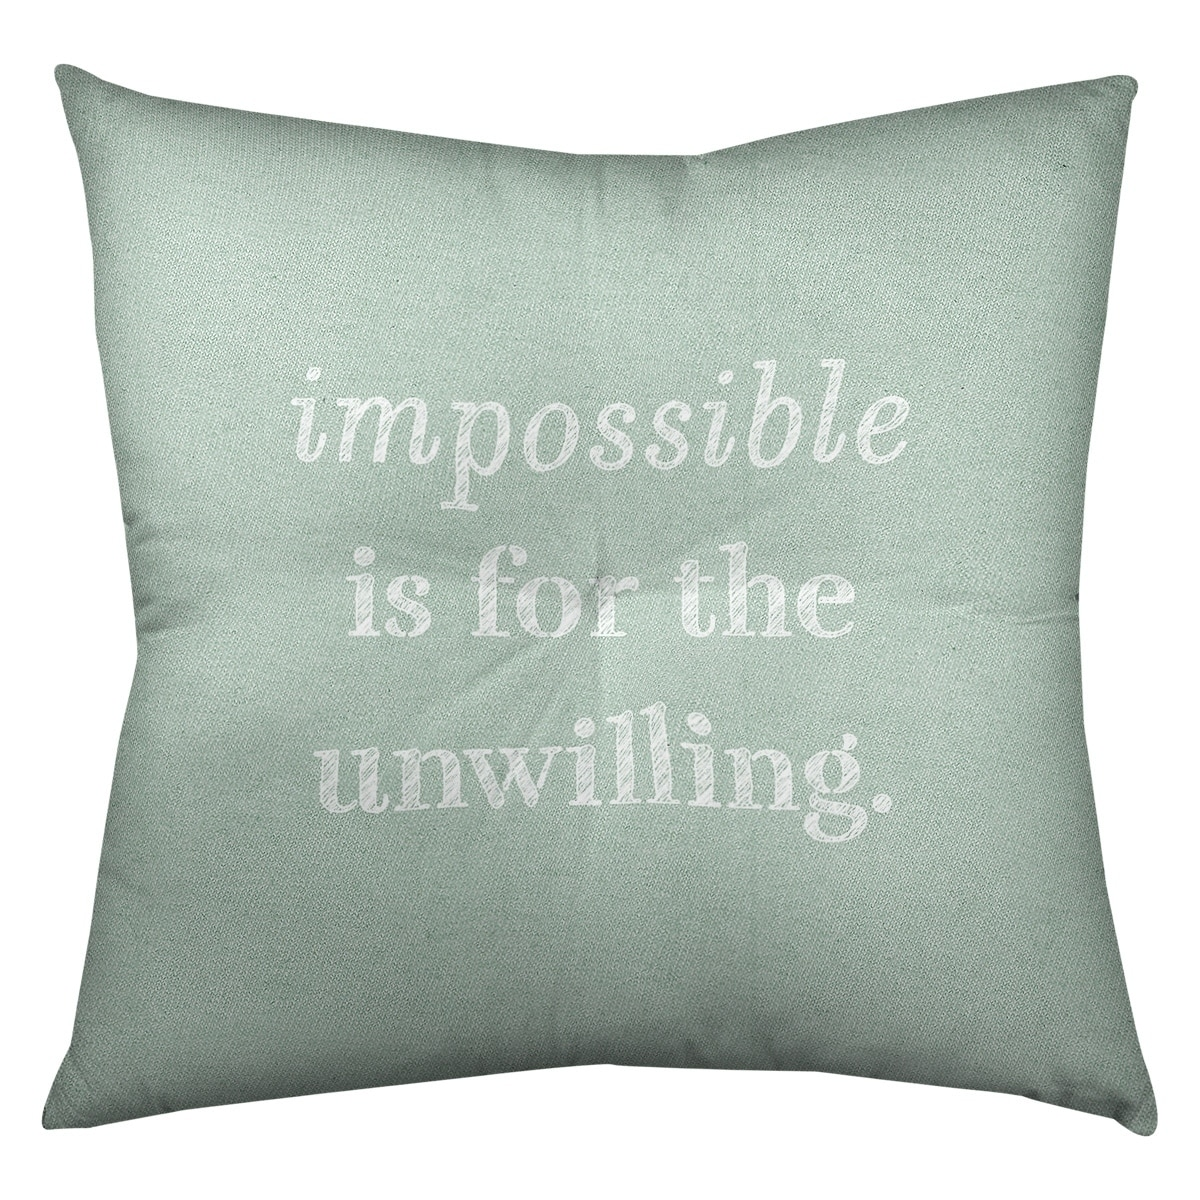 Quotes Handwritten Impossible Quote Floor Pillow Square Tufted Overstock 30309927